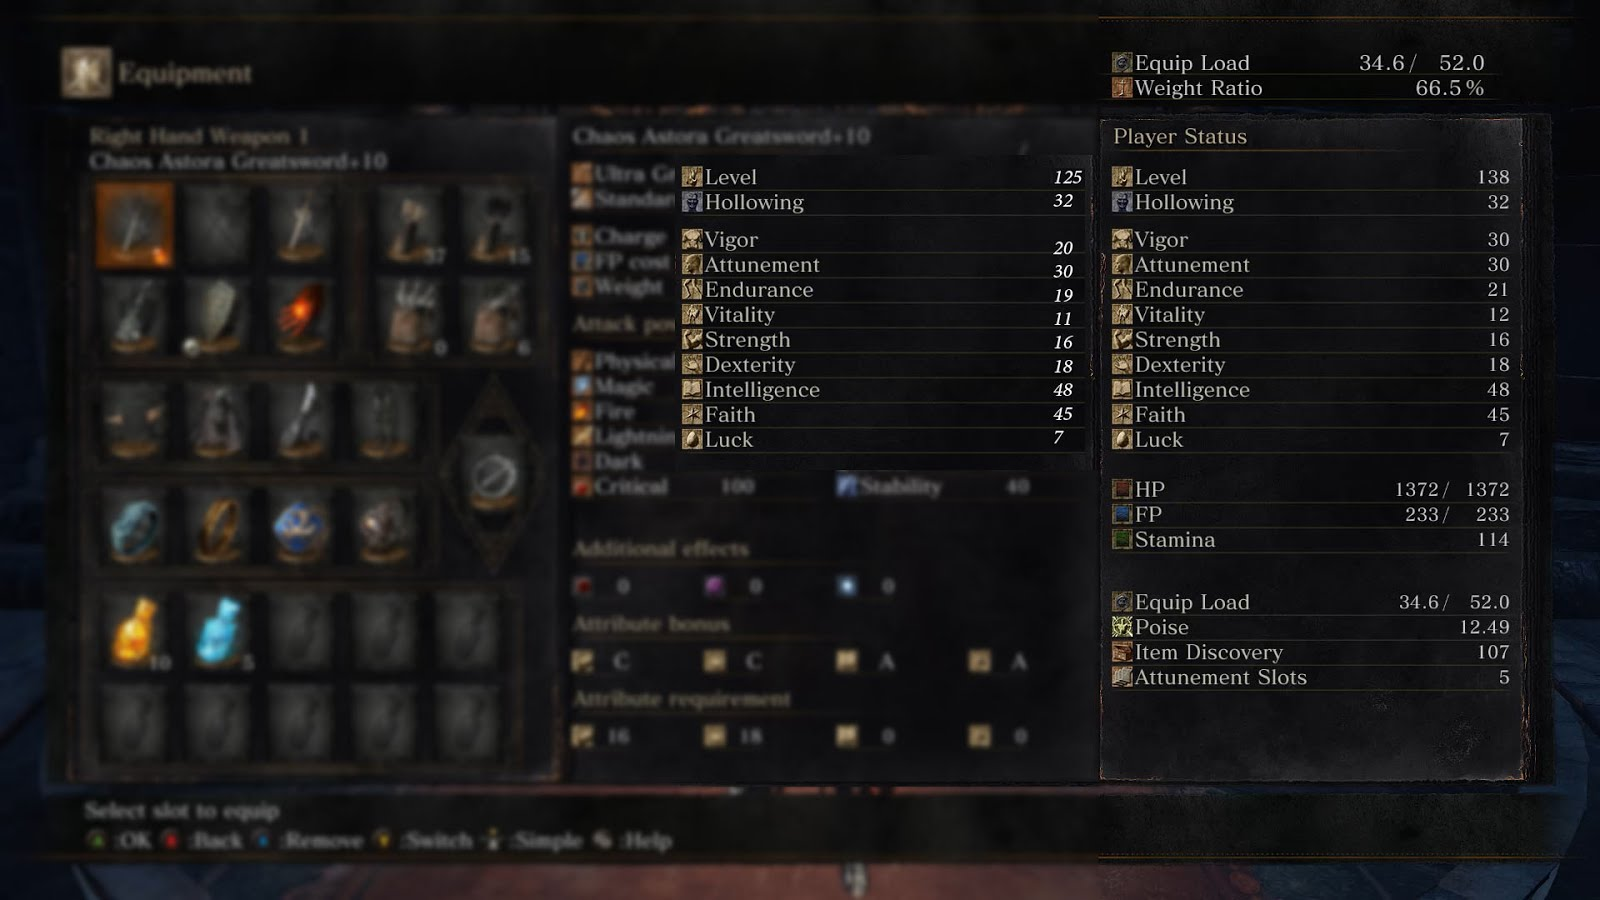 LuNe: Dark Souls 3 PvE Fun build - Jack of All Trades